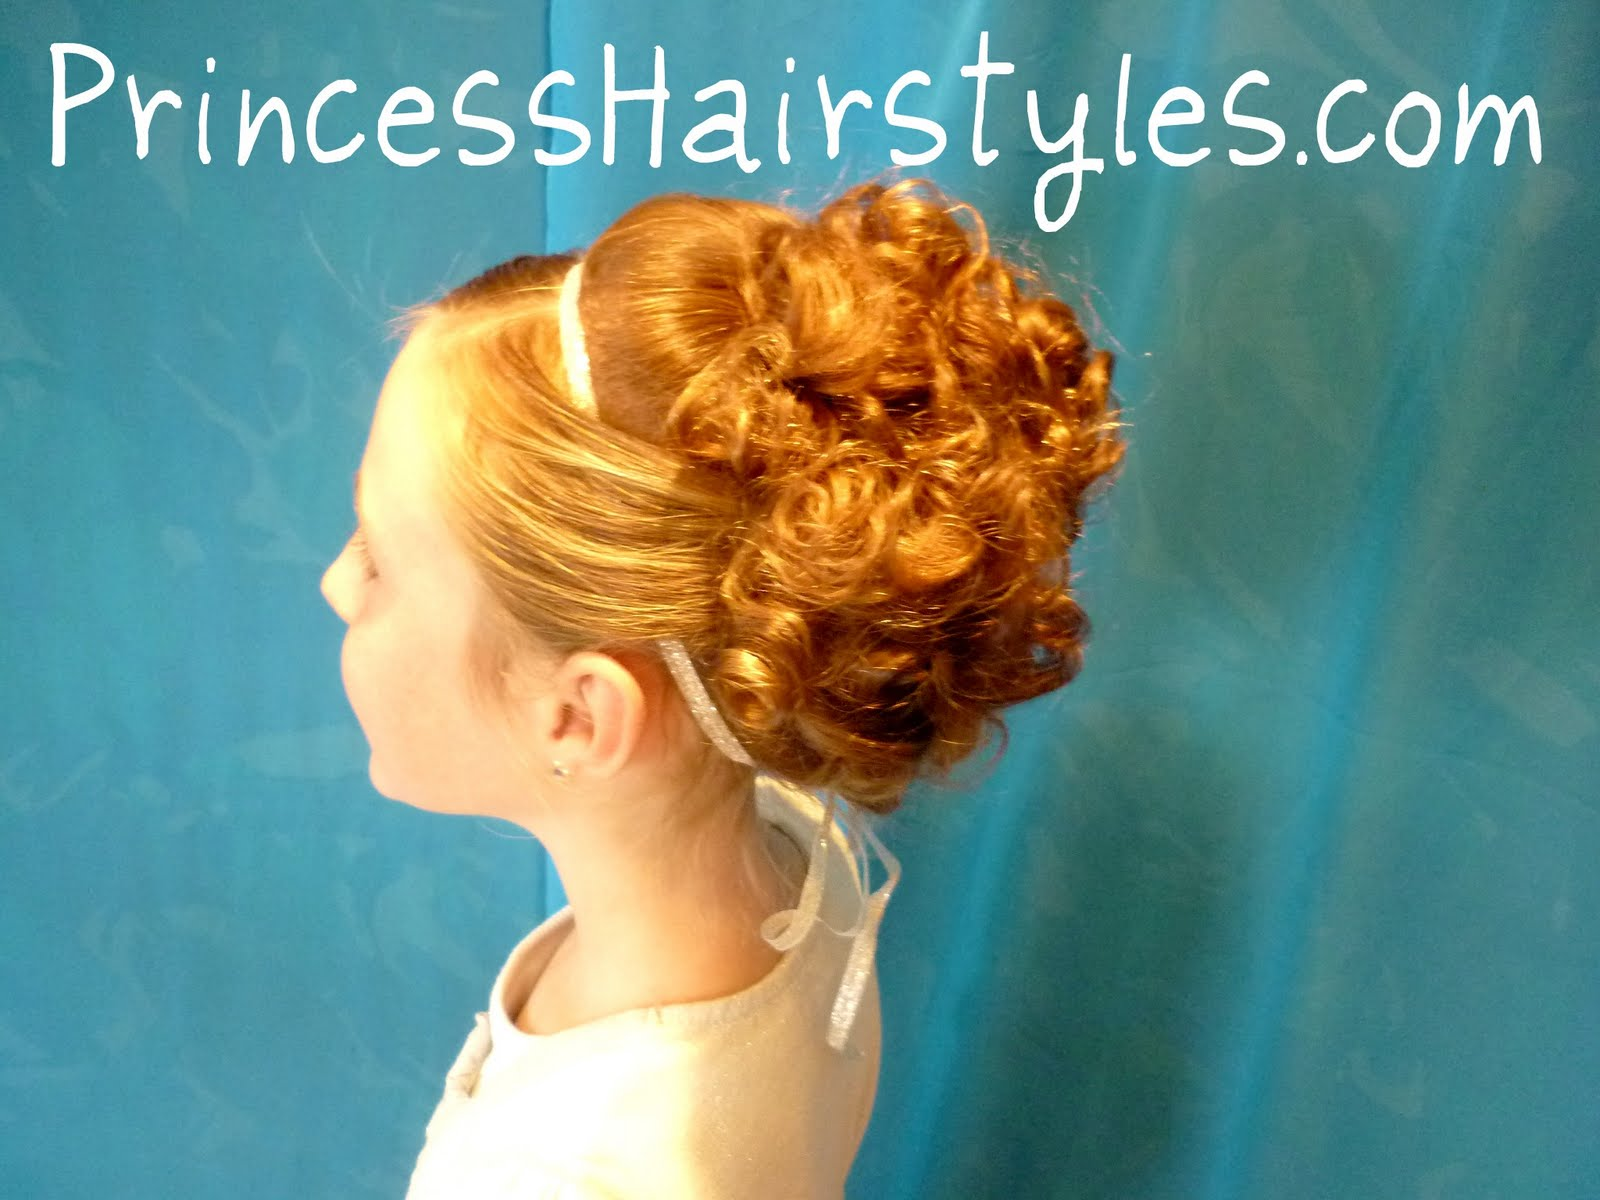 Holiday updo hairstyle hairstyles for girls princess hairstyles holiday updo hairstyle pmusecretfo Images